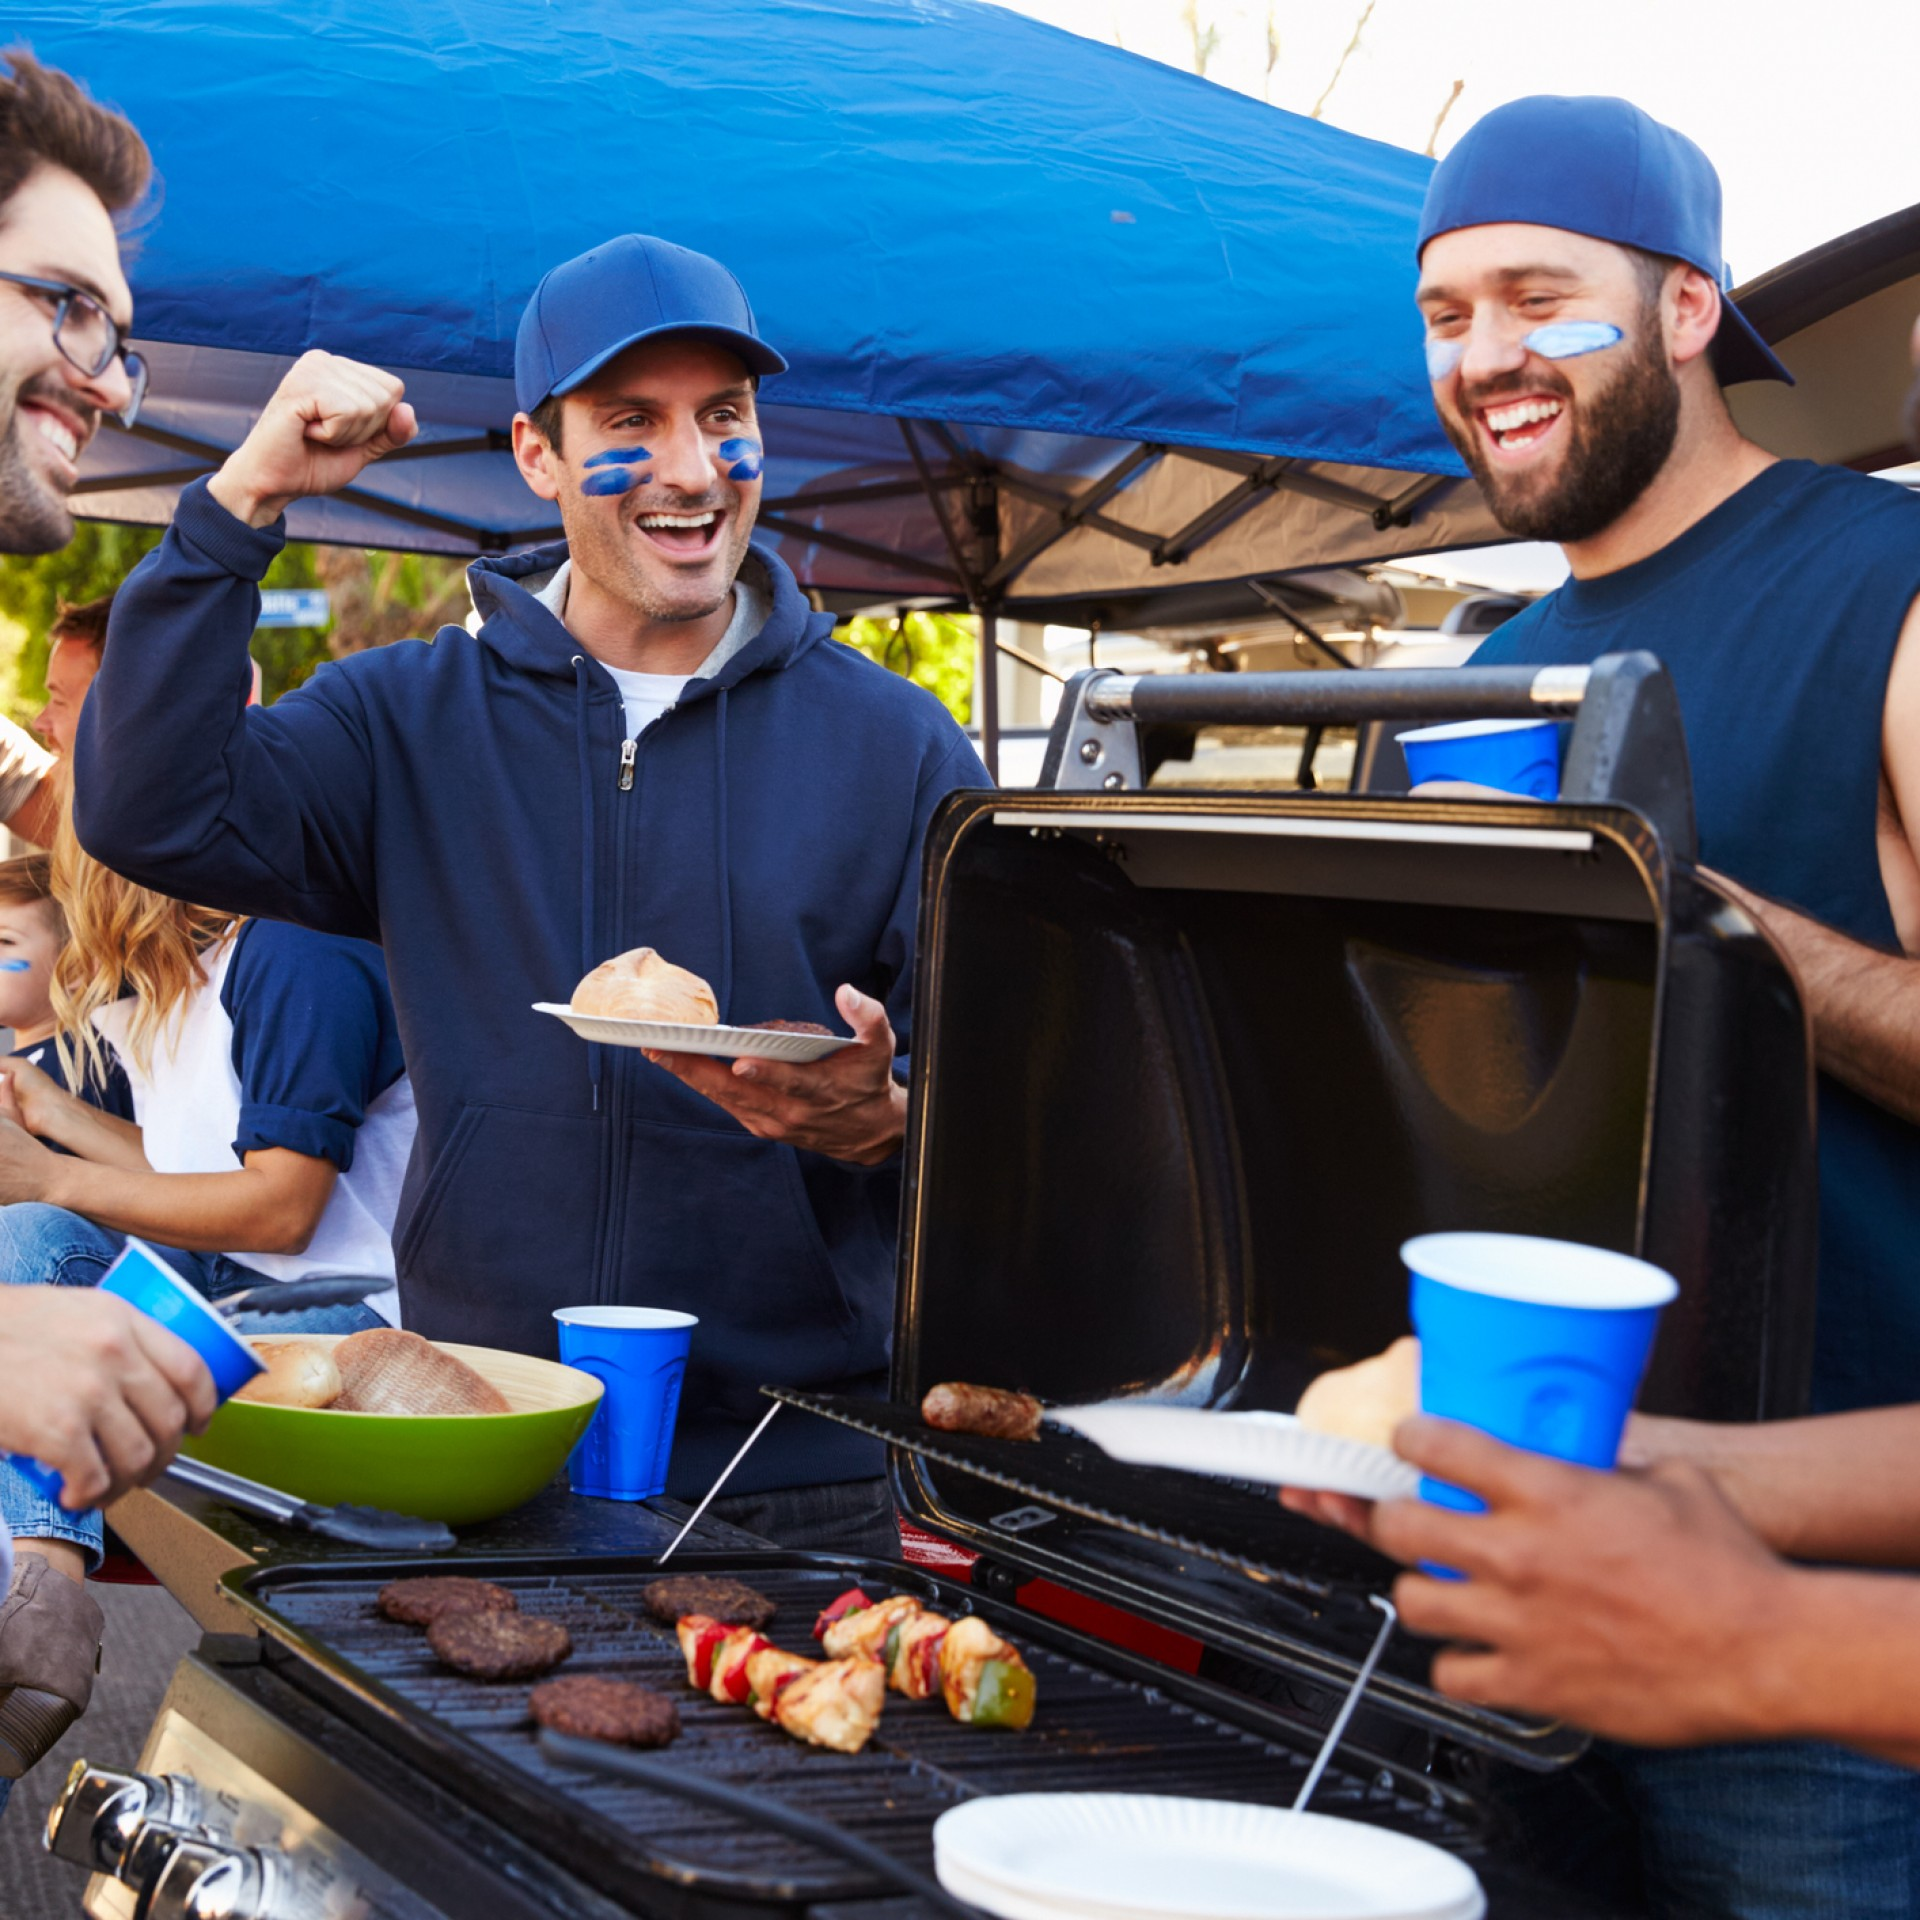 Charity Tailgate Cookout Image 1